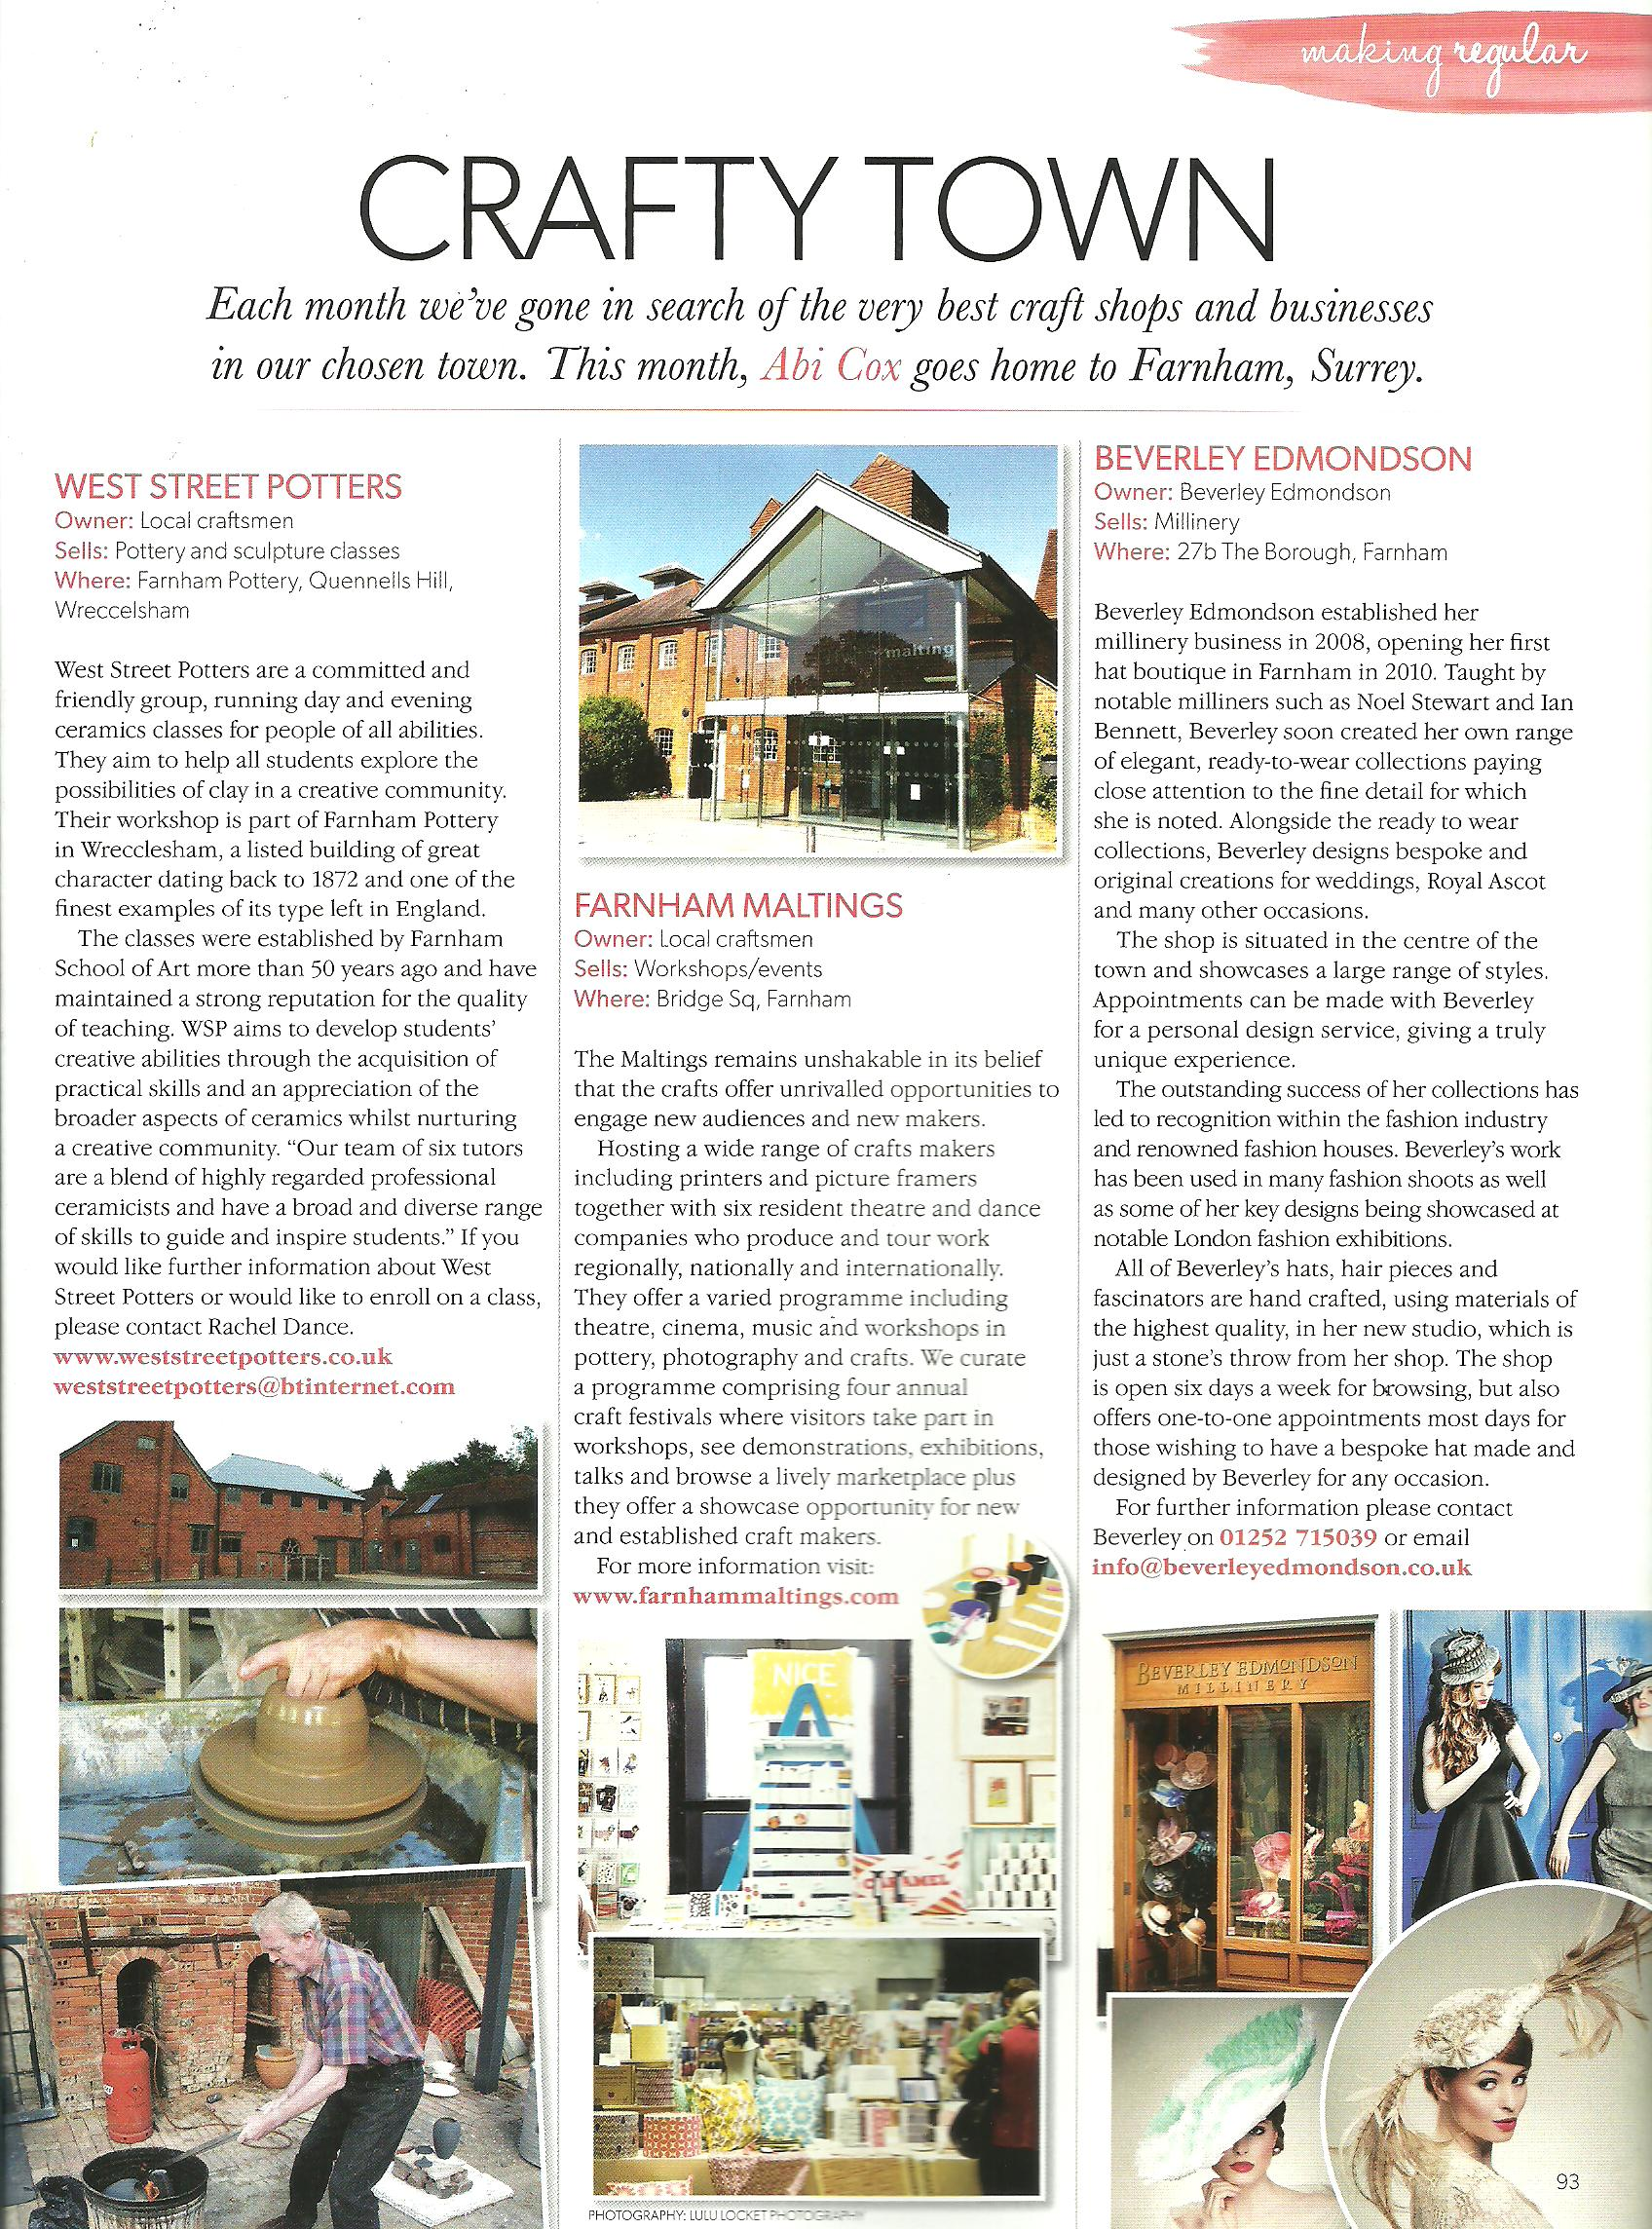 WSP feature in 'Making' Magazine